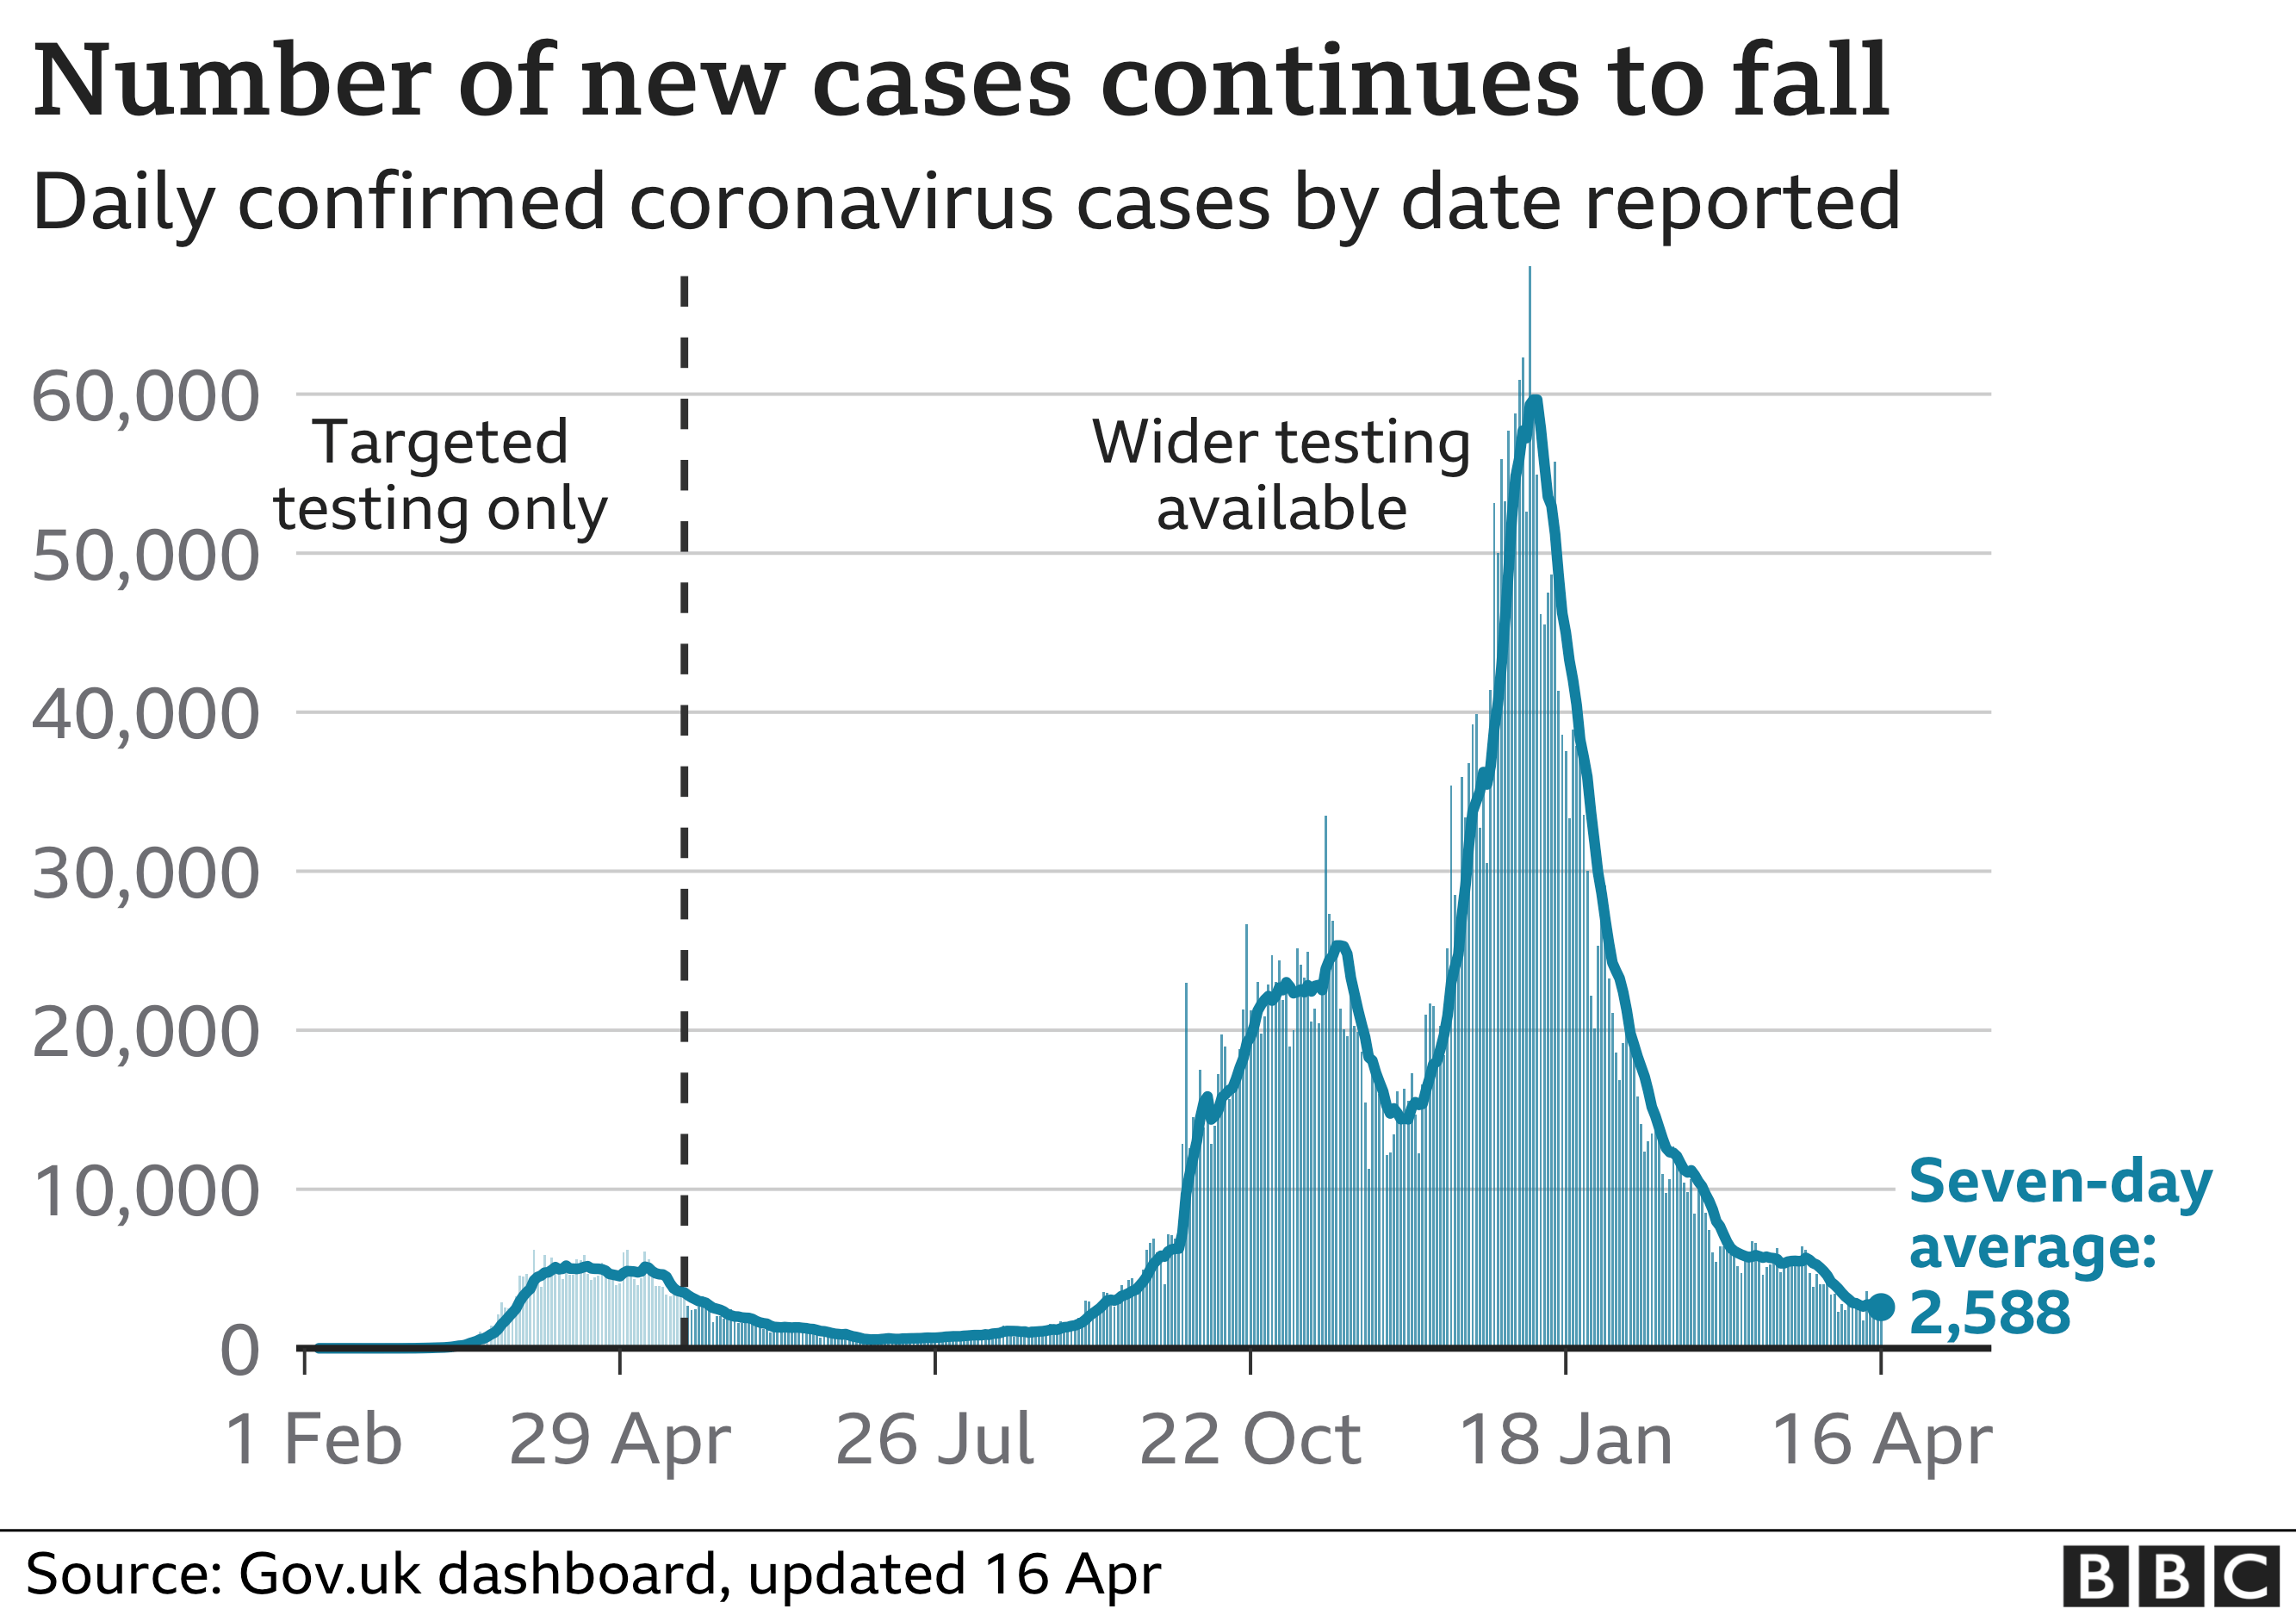 Chart shows daily cases continuing to fall. Updated 16 April